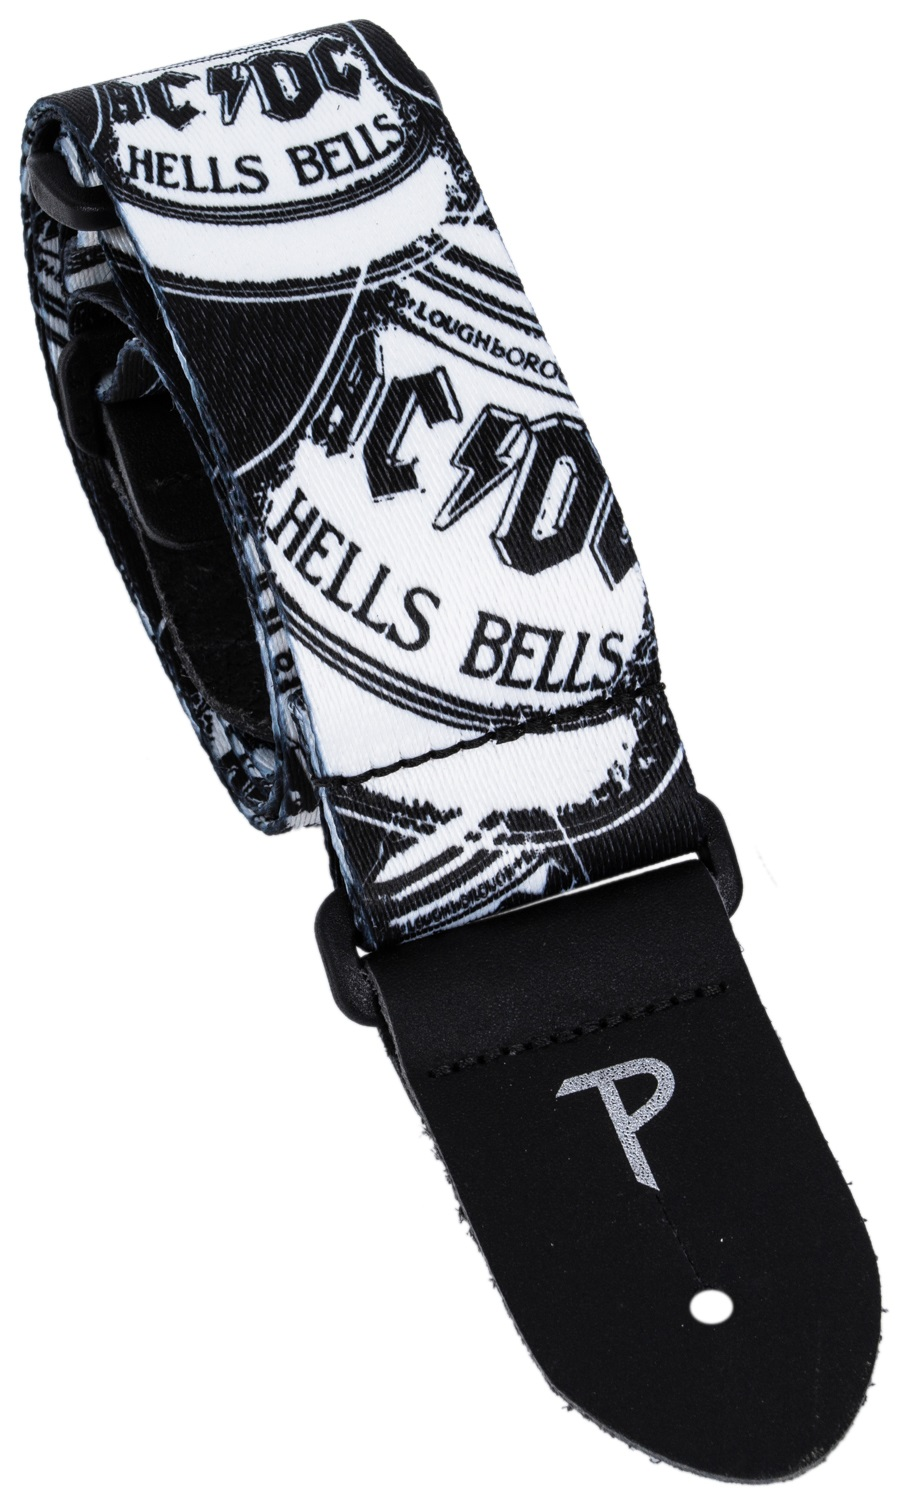 Perri's Leathers 8013 AC/DC Hell's Bells